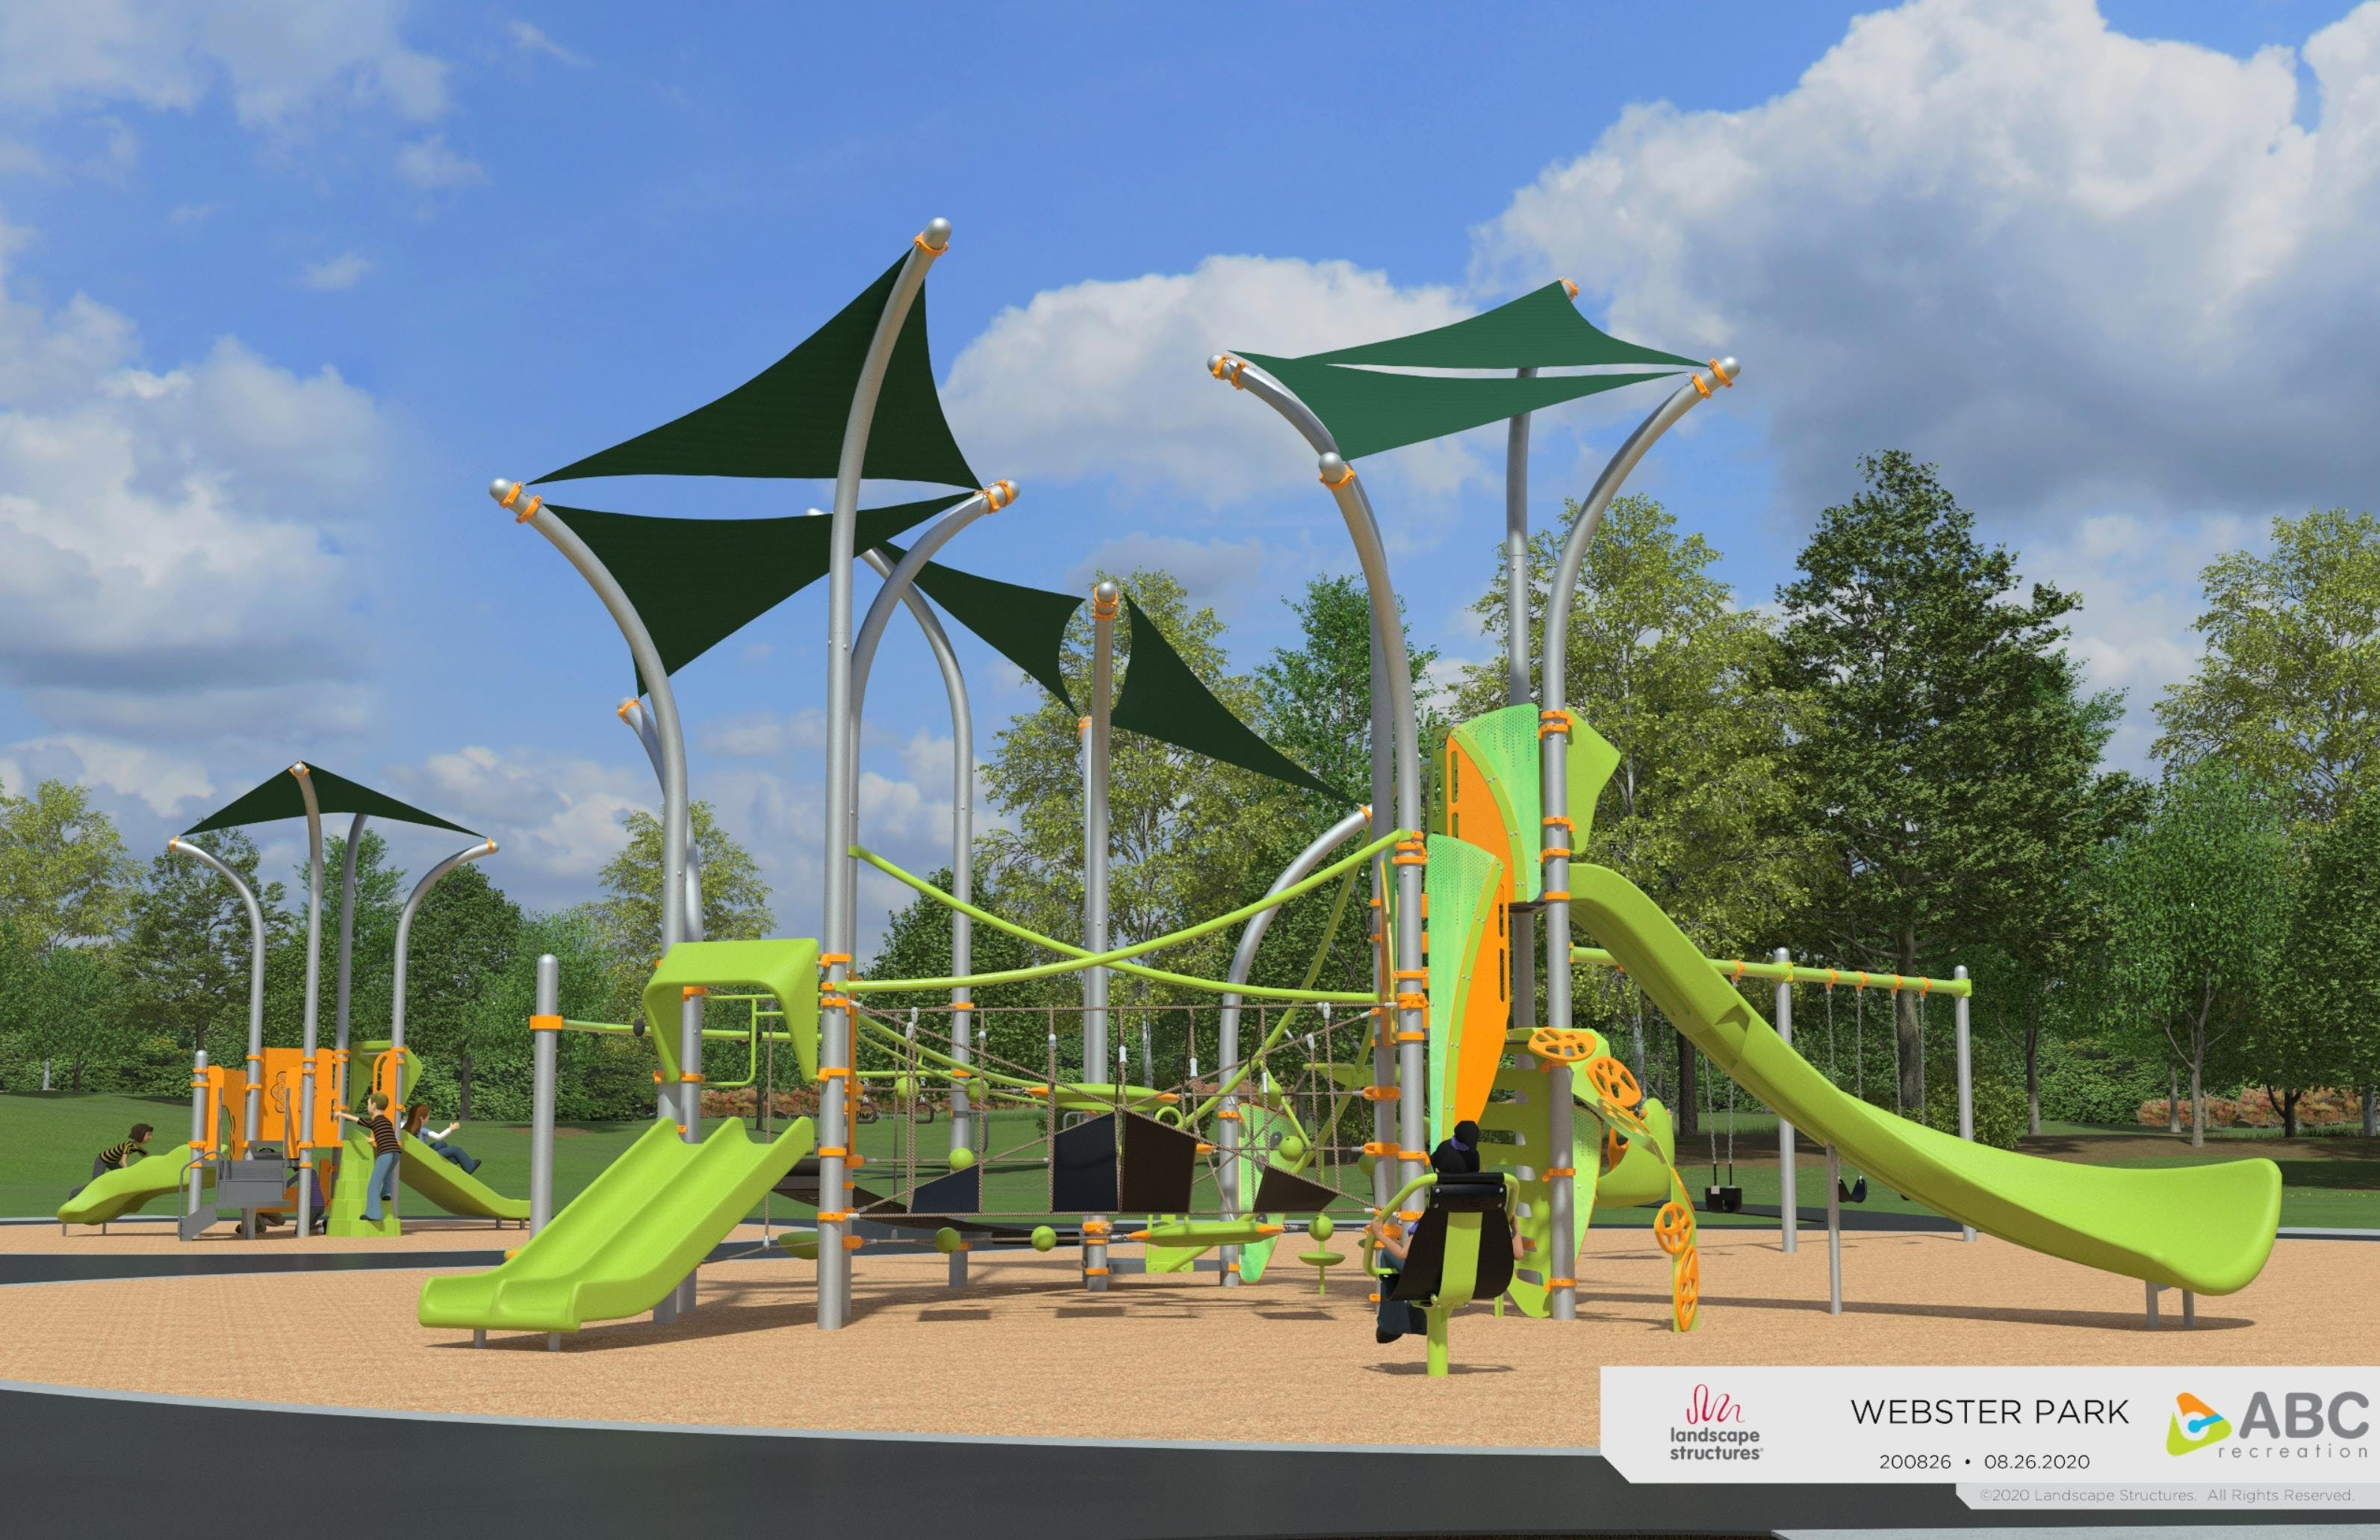 Pages from Webster_Park_Playground_Equipment[1] 2.jpg